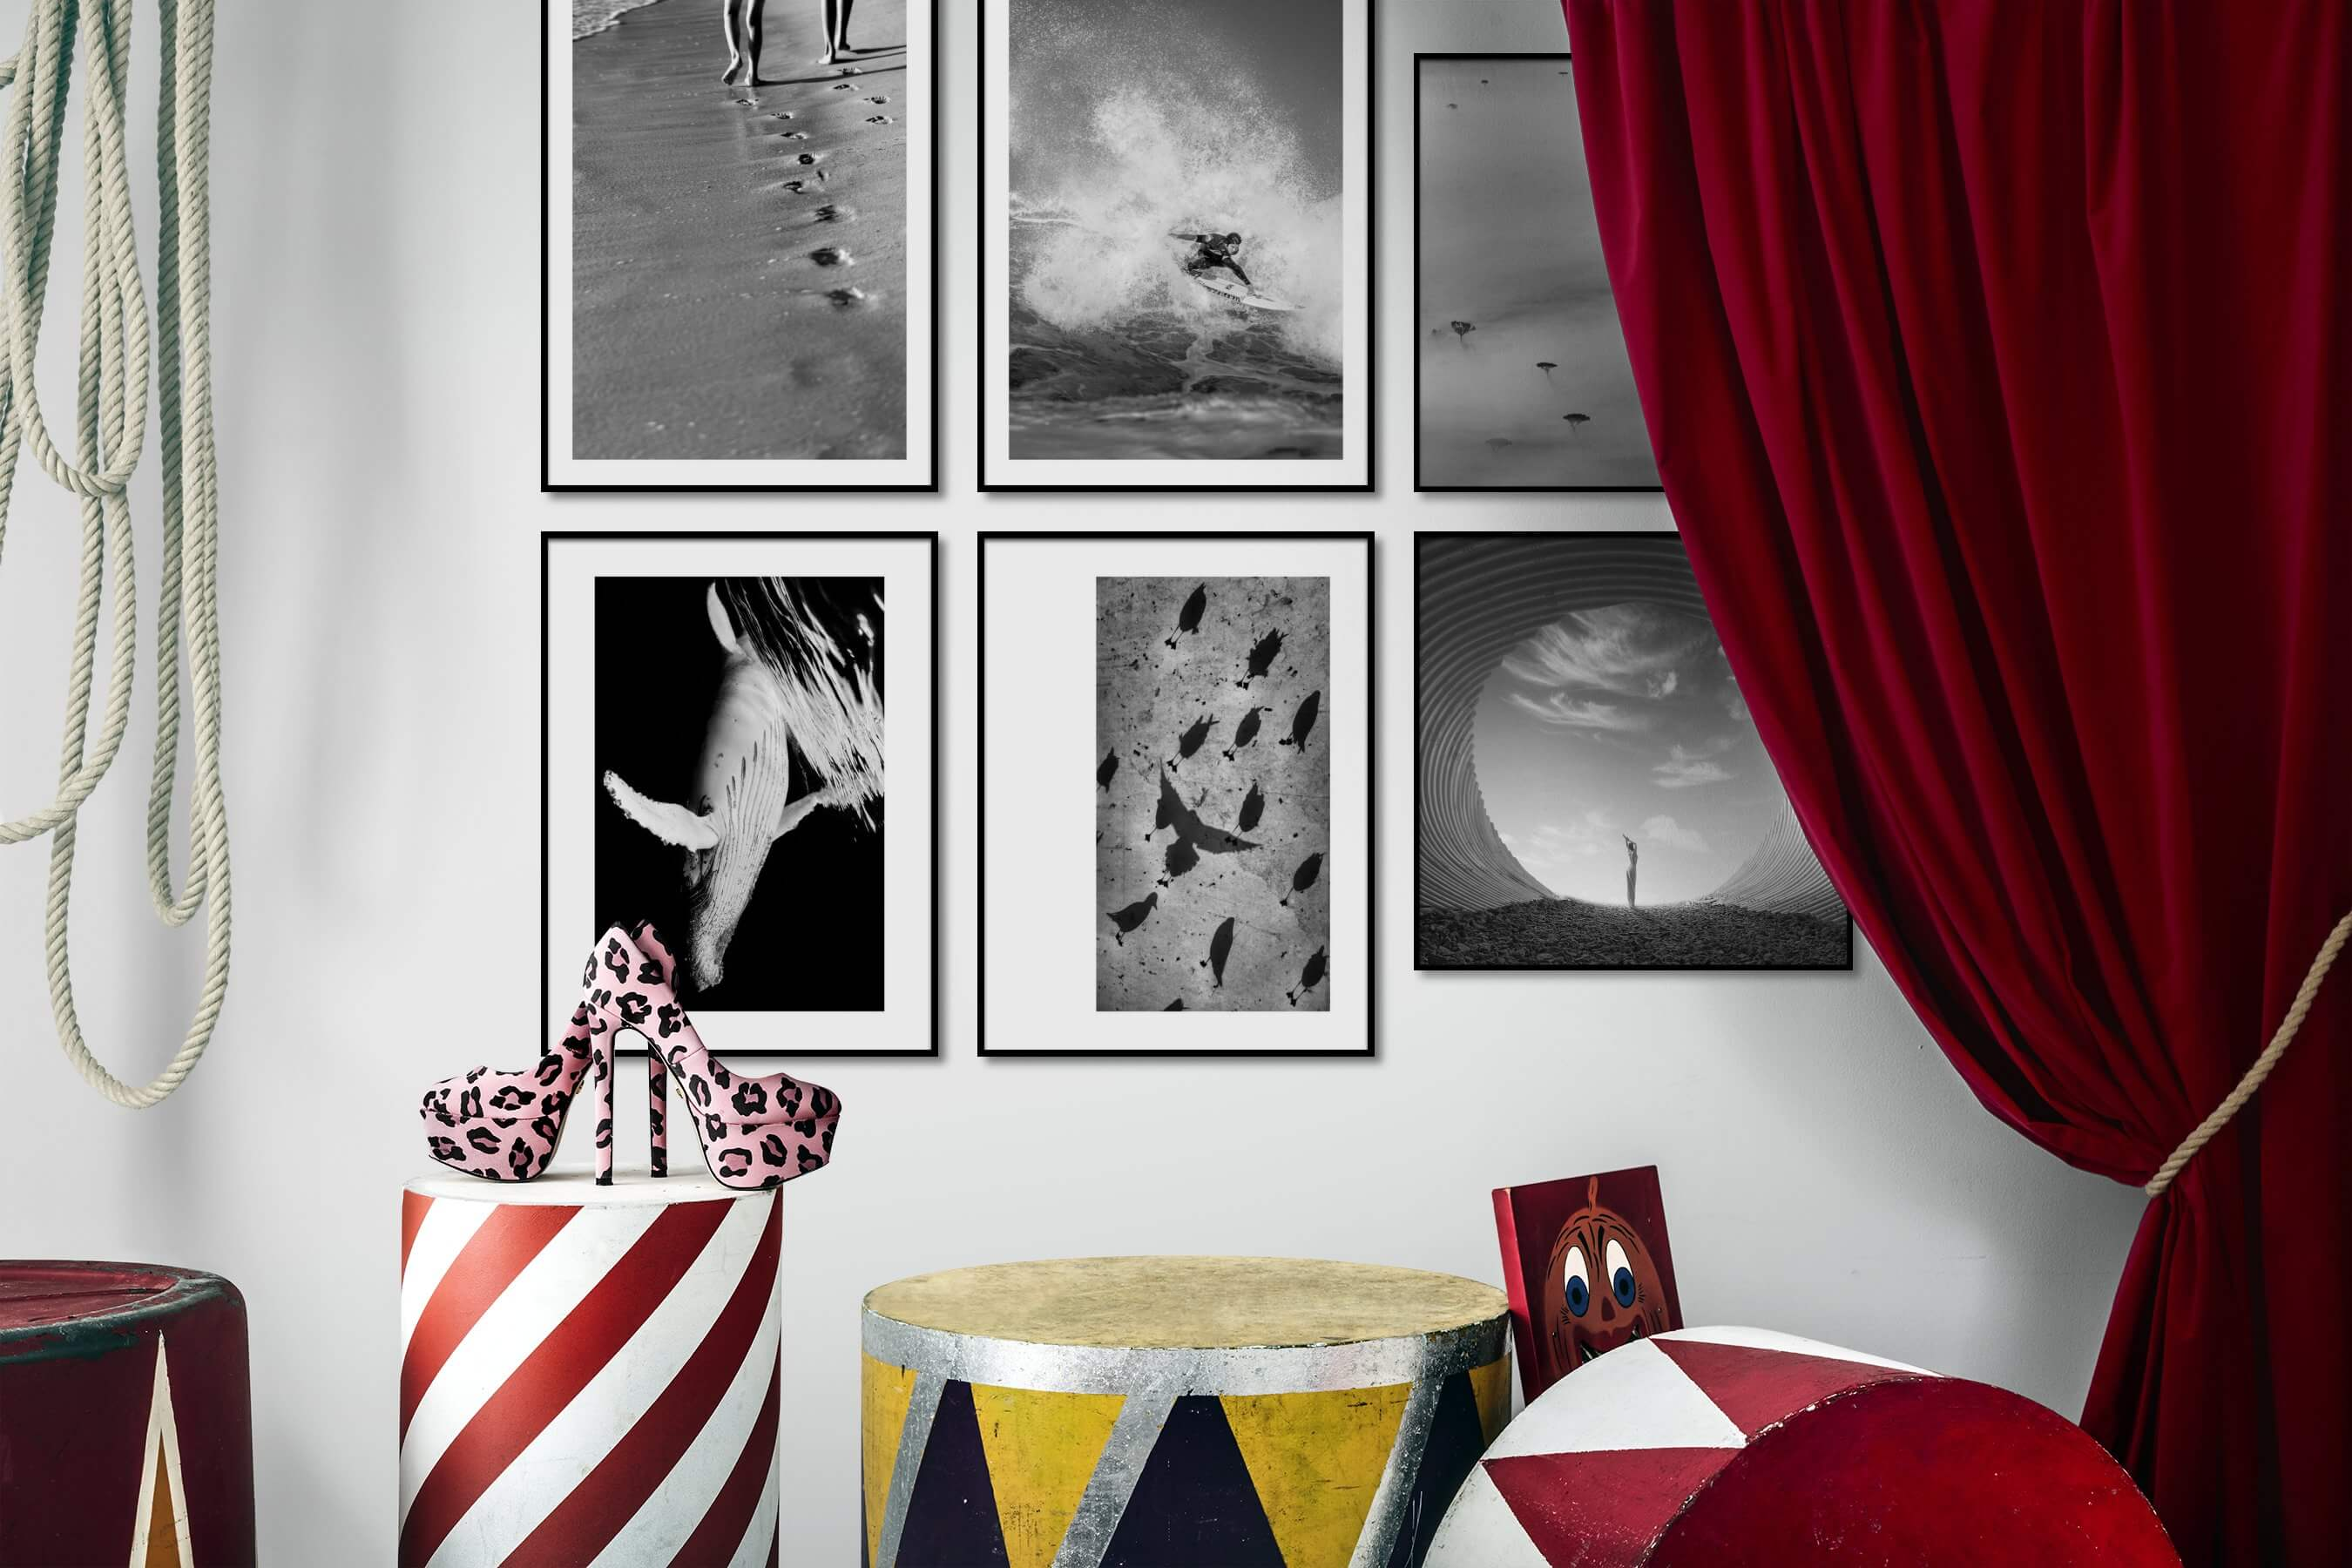 Gallery wall idea with six framed pictures arranged on a wall depicting Black & White, Beach & Water, Animals, For the Moderate, For the Minimalist, and Nature